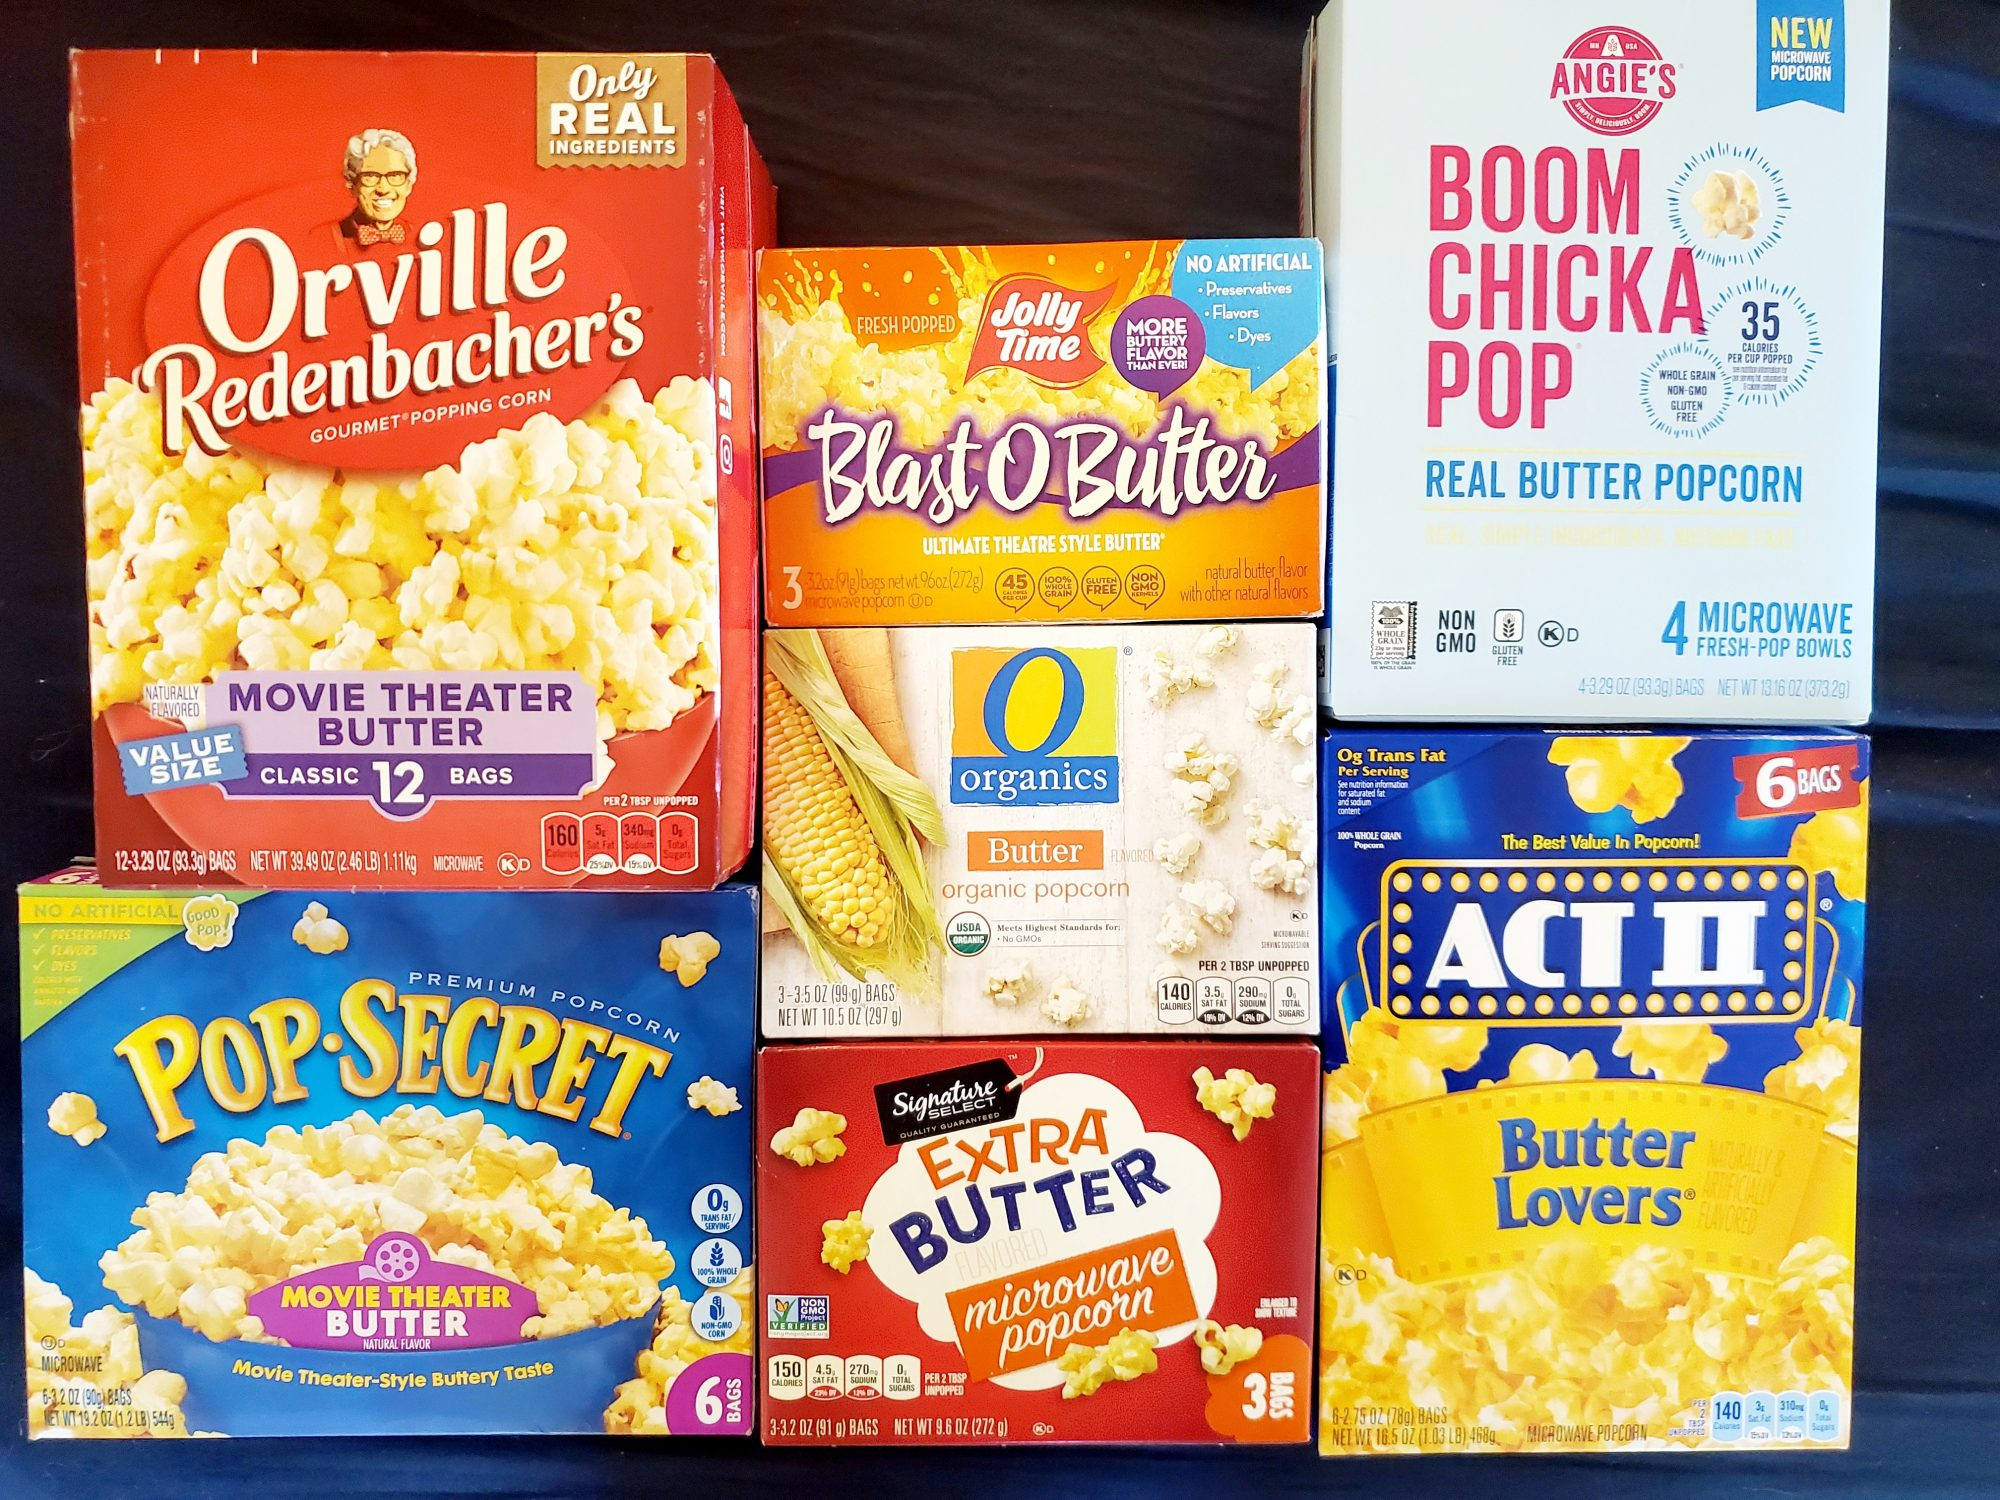 We Tried 7 Brands of Microwave Popcorn So You Don't Have To